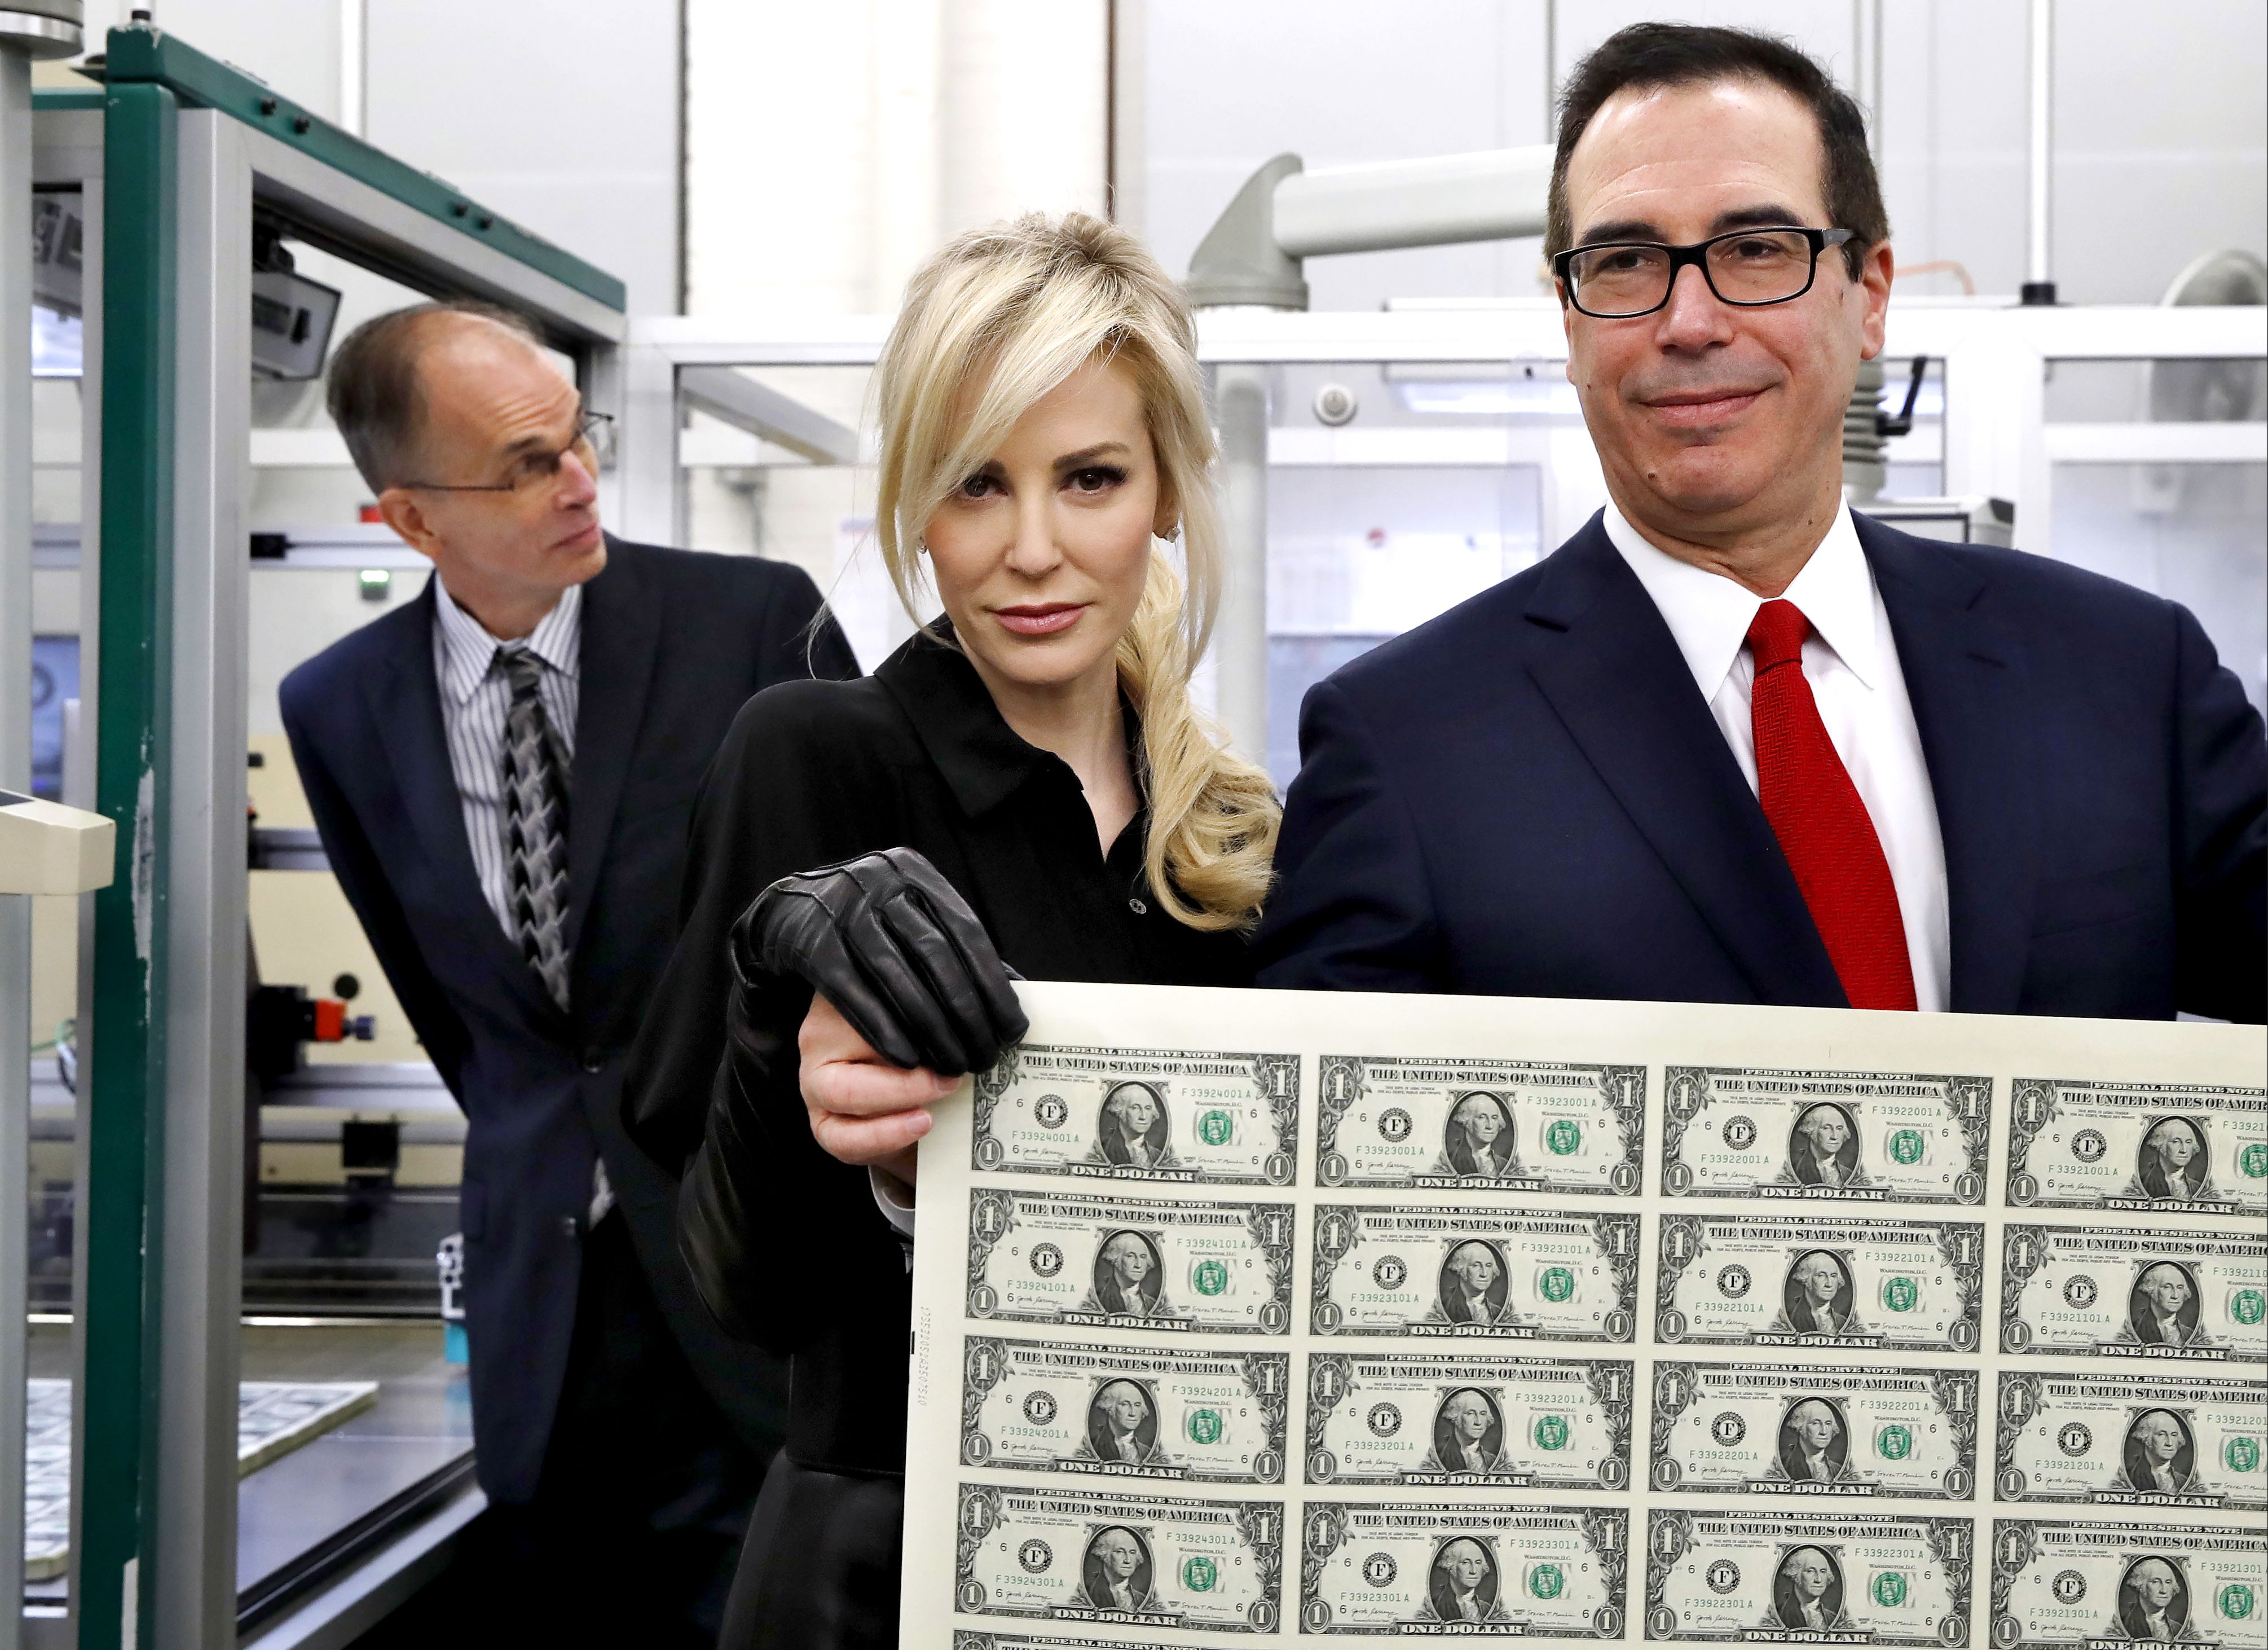 When Treasury Secretary Steven Mnuchin and his wife Louise Linton stopped by the Bureau of Engraving and Printing, they were photographed checking out $1 bills. The wire photos of the pair holding a sheet of dollars - the first currency notes bearing his and U.S. Treasurer Jovita Carranza's signatures - just made the parody too easy.                      It predictably and instantly became a flash point for online fun and comedian Andy Richter's joking tweet about it got 14,000 likes.